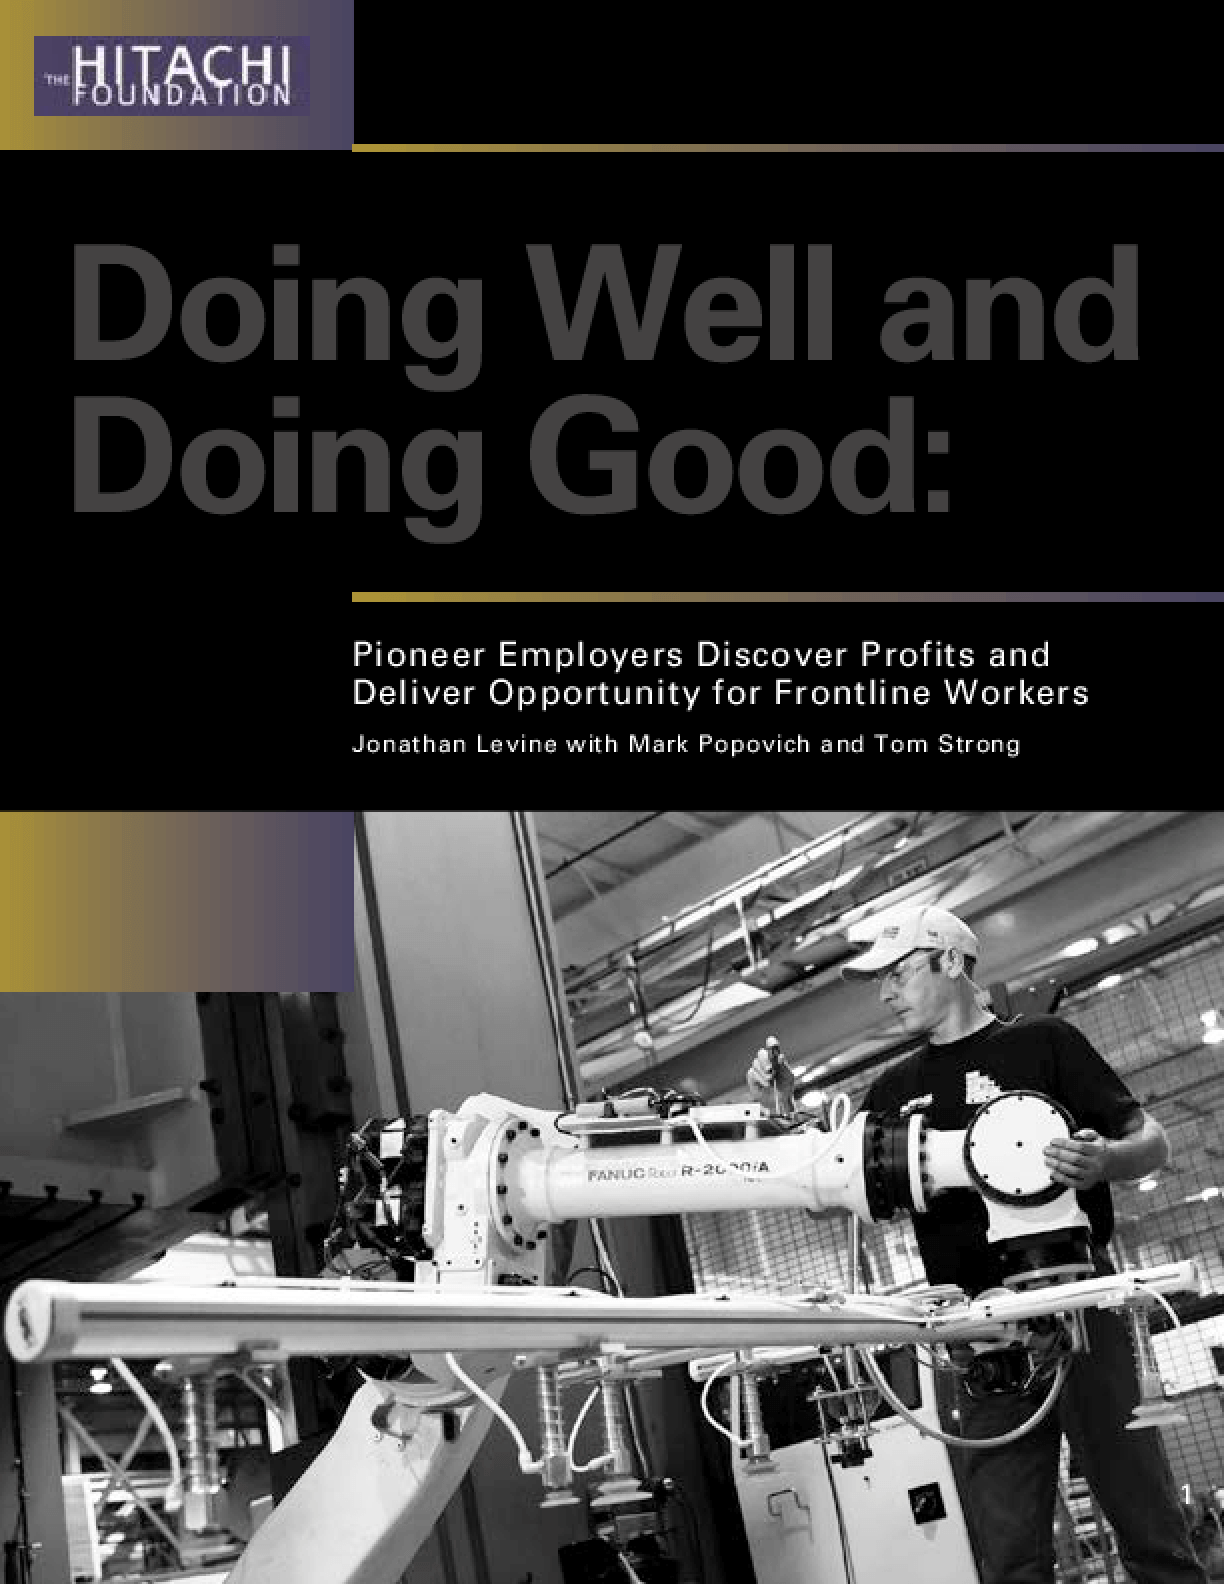 Doing Well and Doing Good: Pioneer Employers Discover Profits and Deliver Opportunity for Frontline Workers